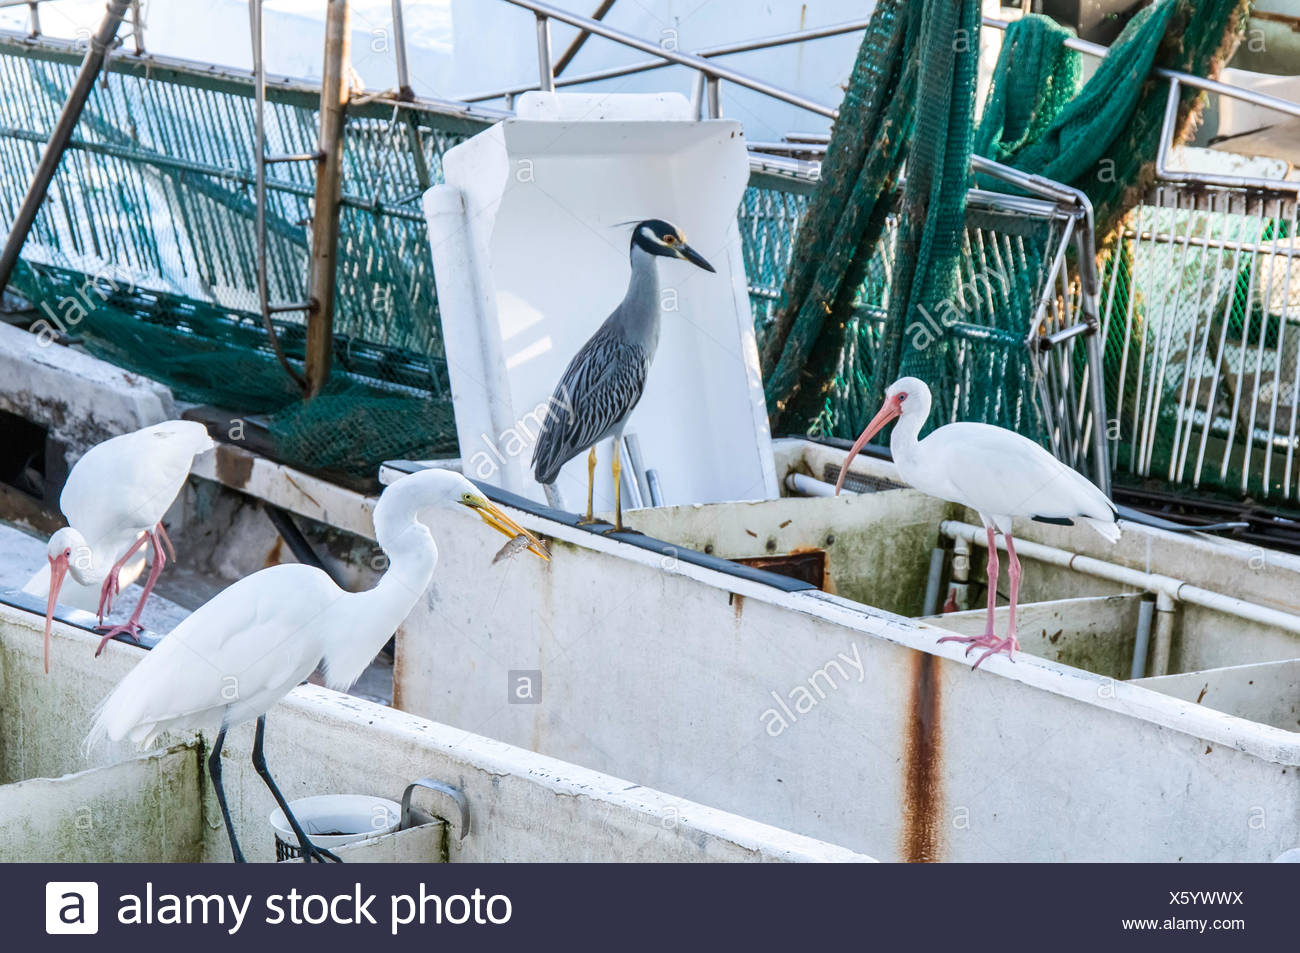 USA, Florida, Miami, Birds standing on containers - Stock Image